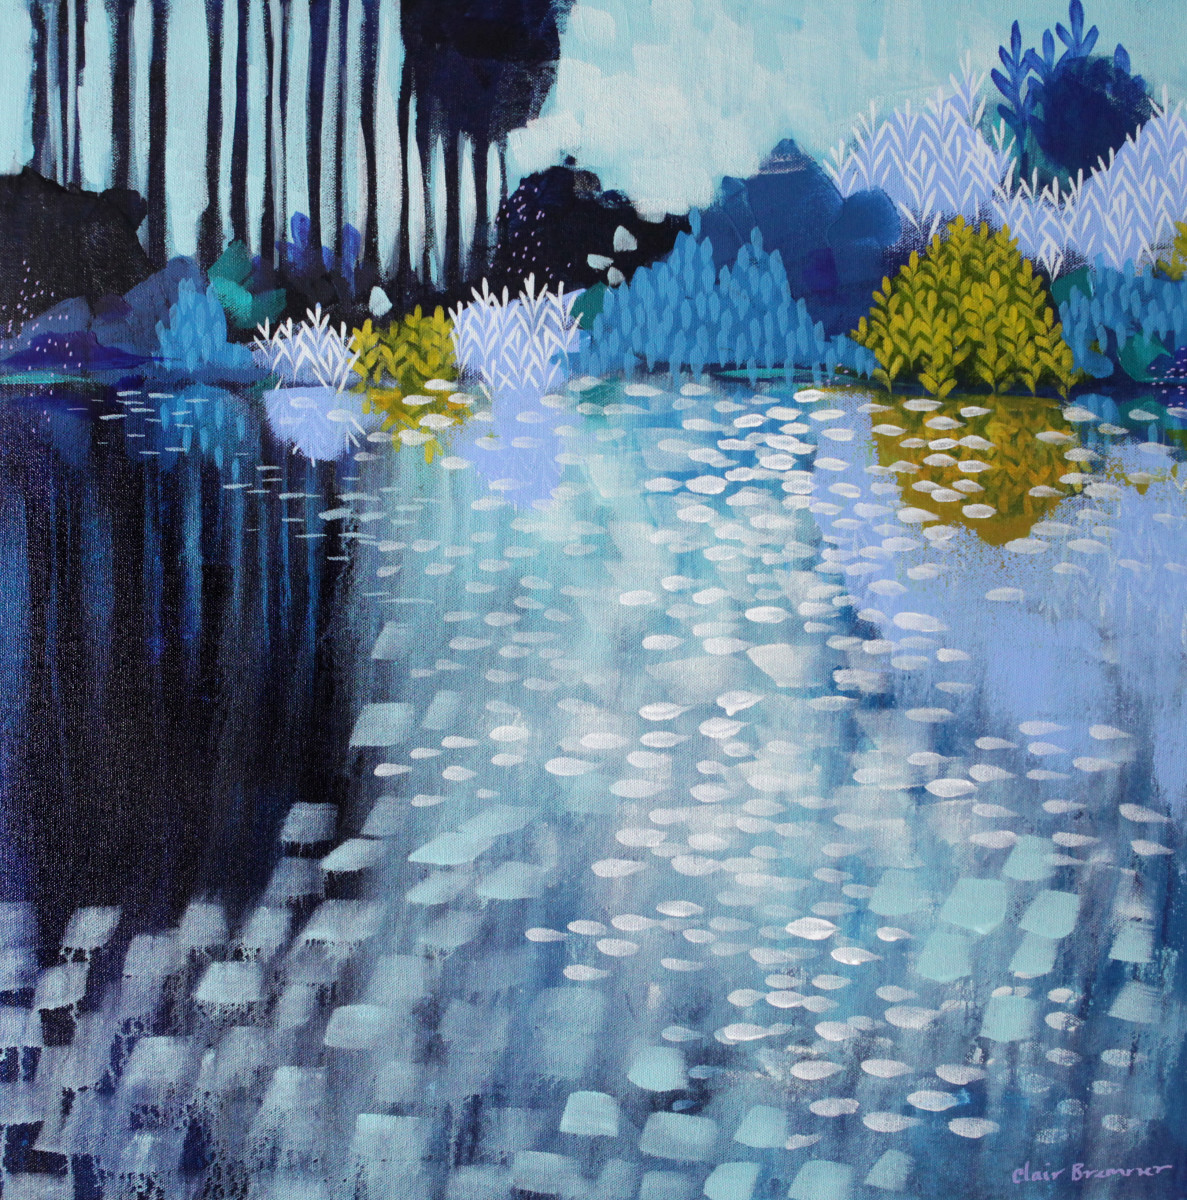 Blue Morning 1 by Clair Bremner